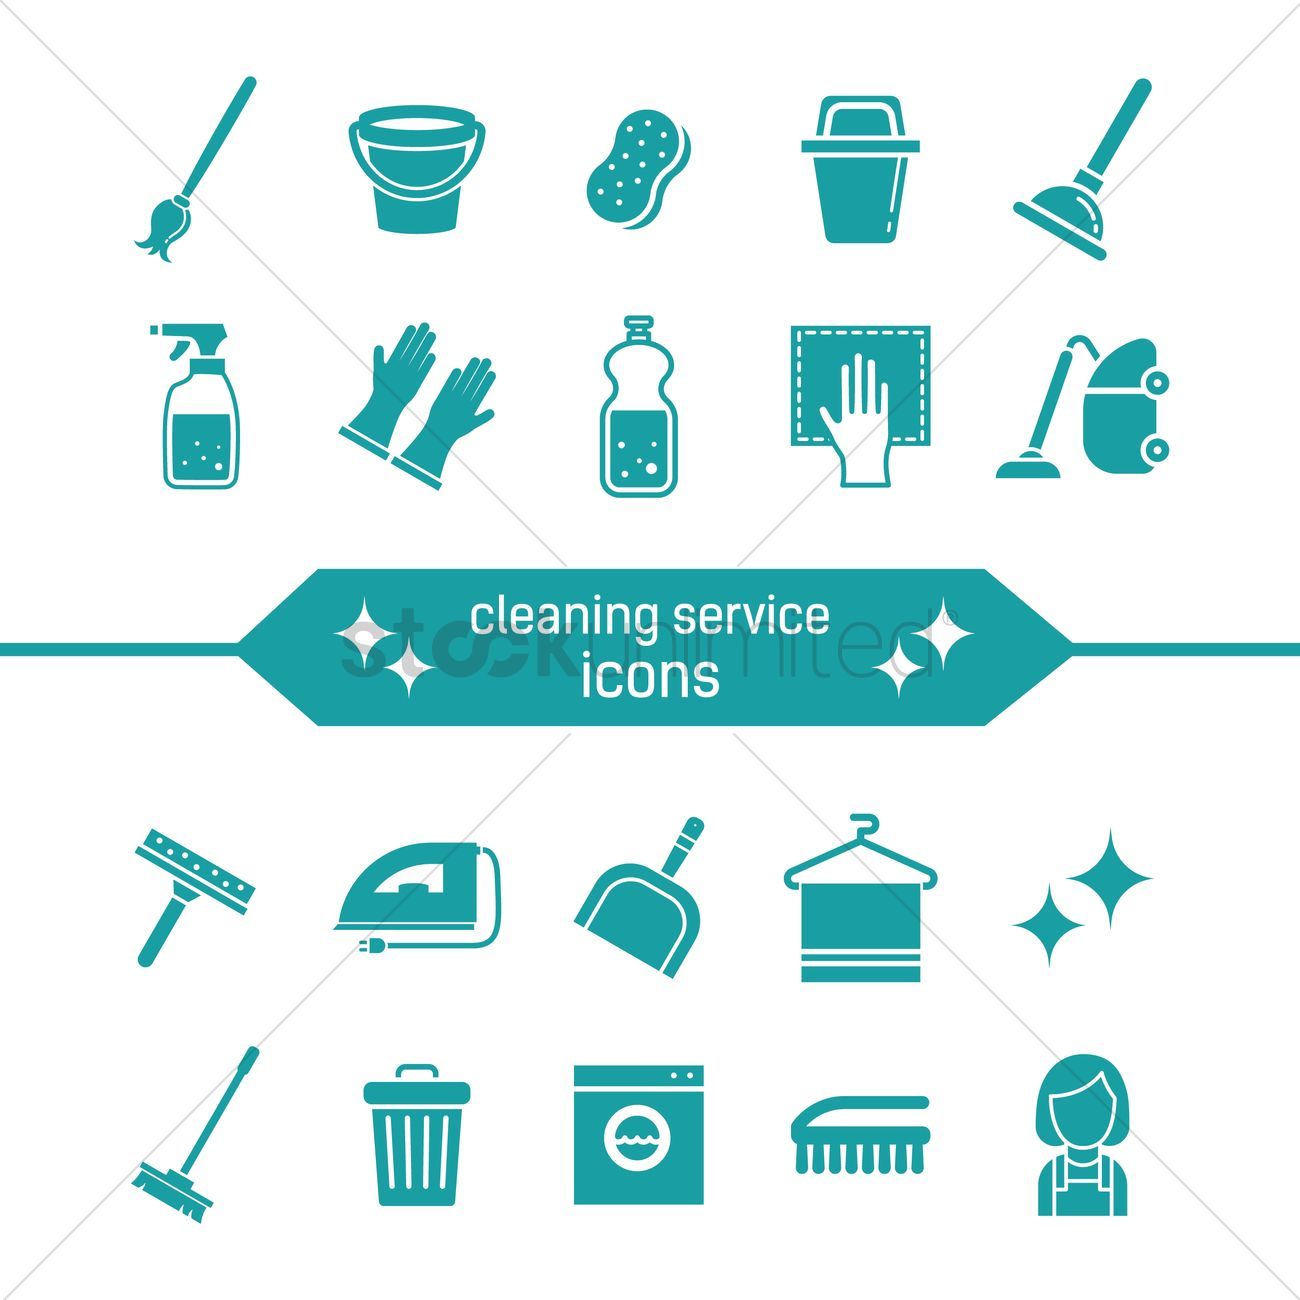 cleaning service icons vector image   2011821 stockunlimited